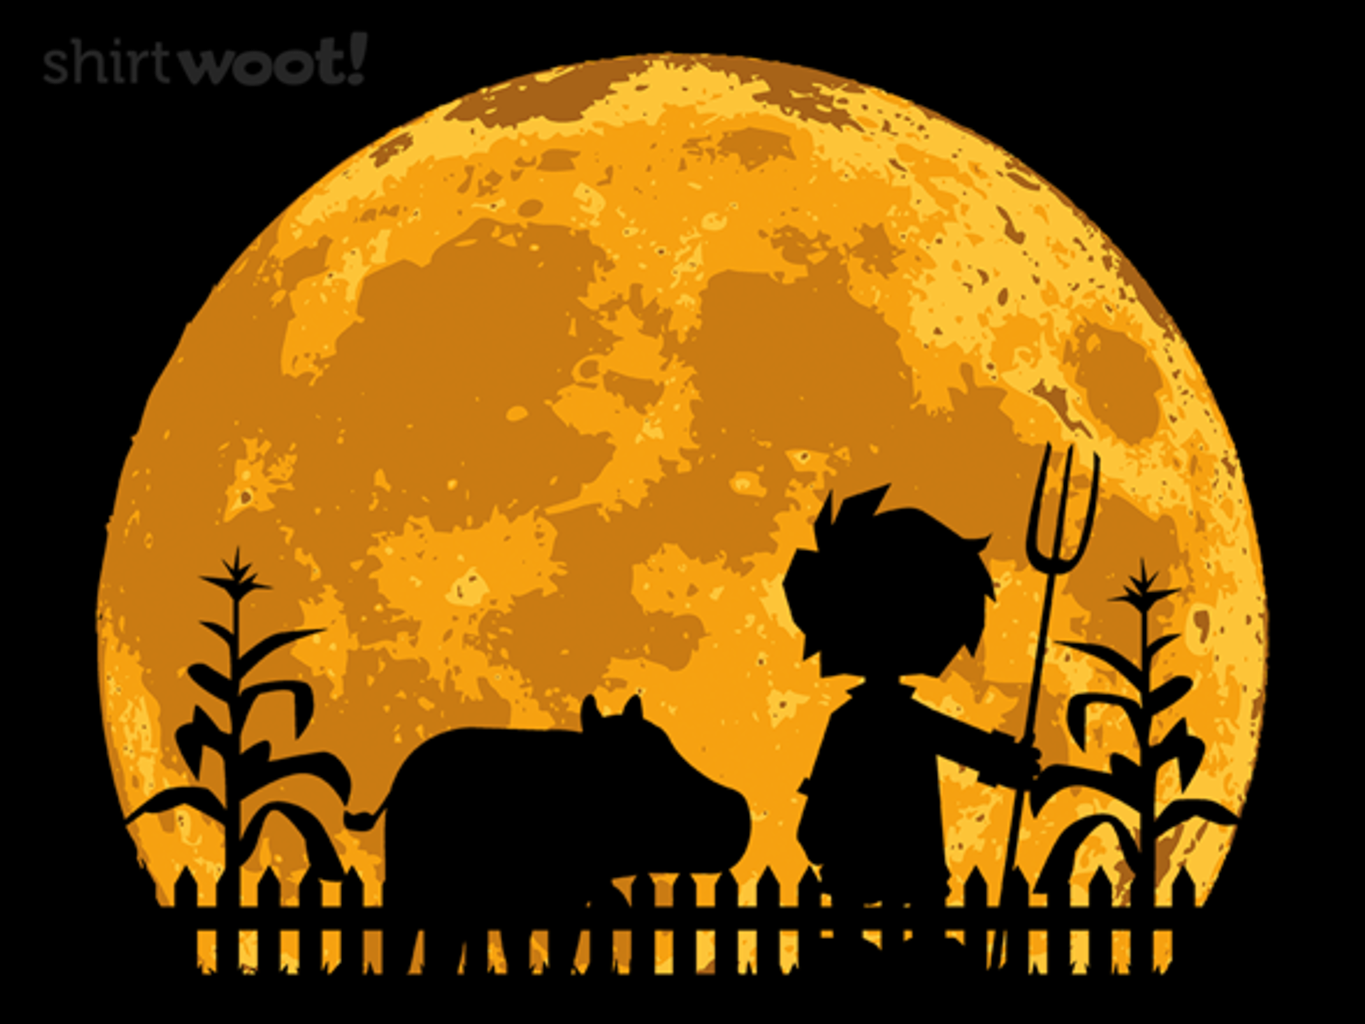 Woot!: Harvest Moon Farm